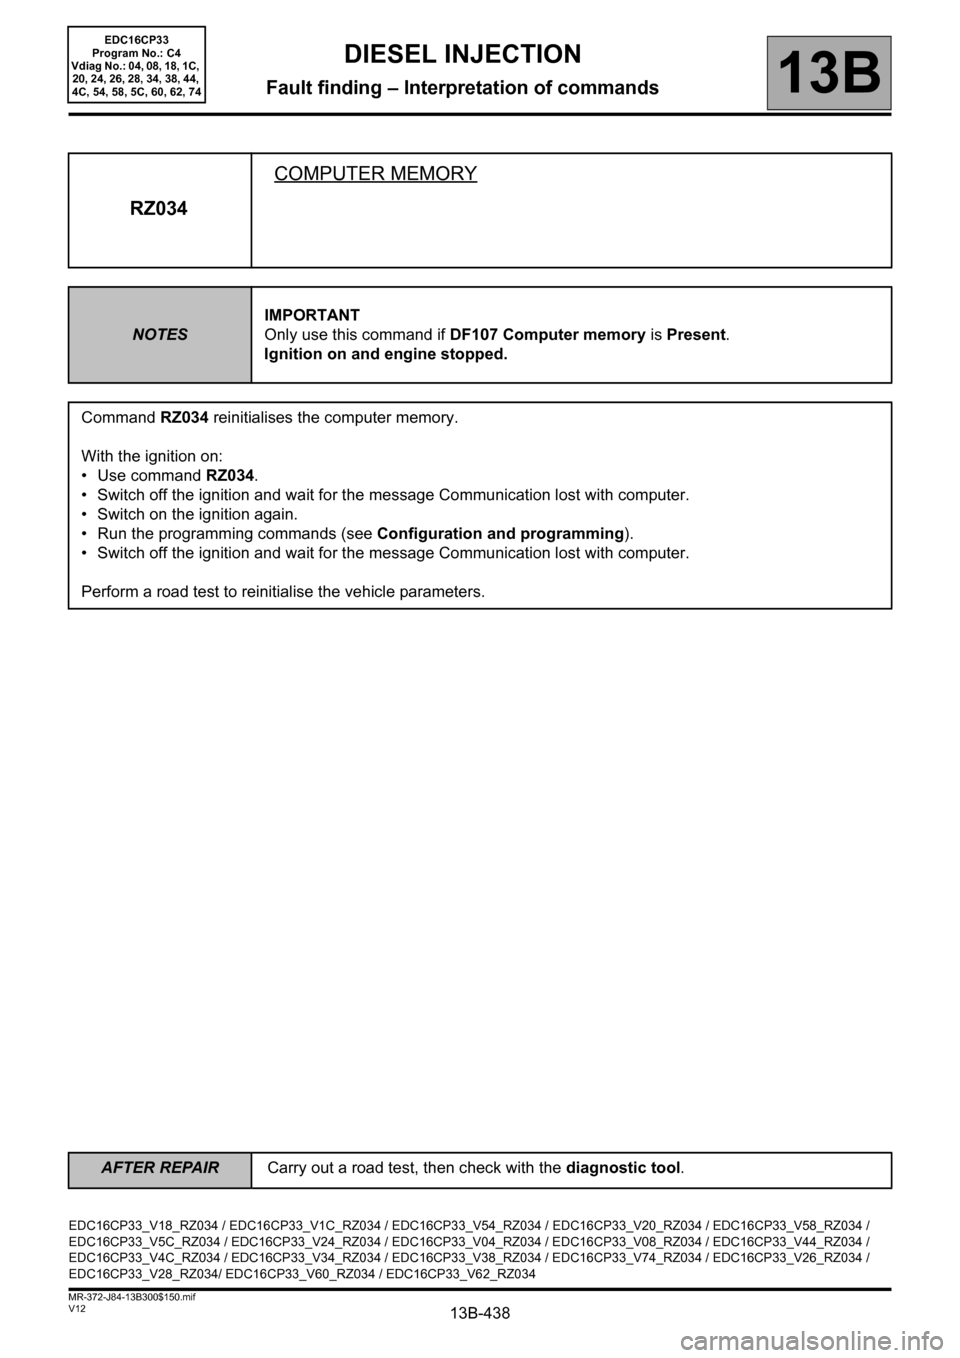 RENAULT SCENIC 2012 J95 / 3.G Engine And Peripherals EDC16CP33 Workshop Manual, Page 438